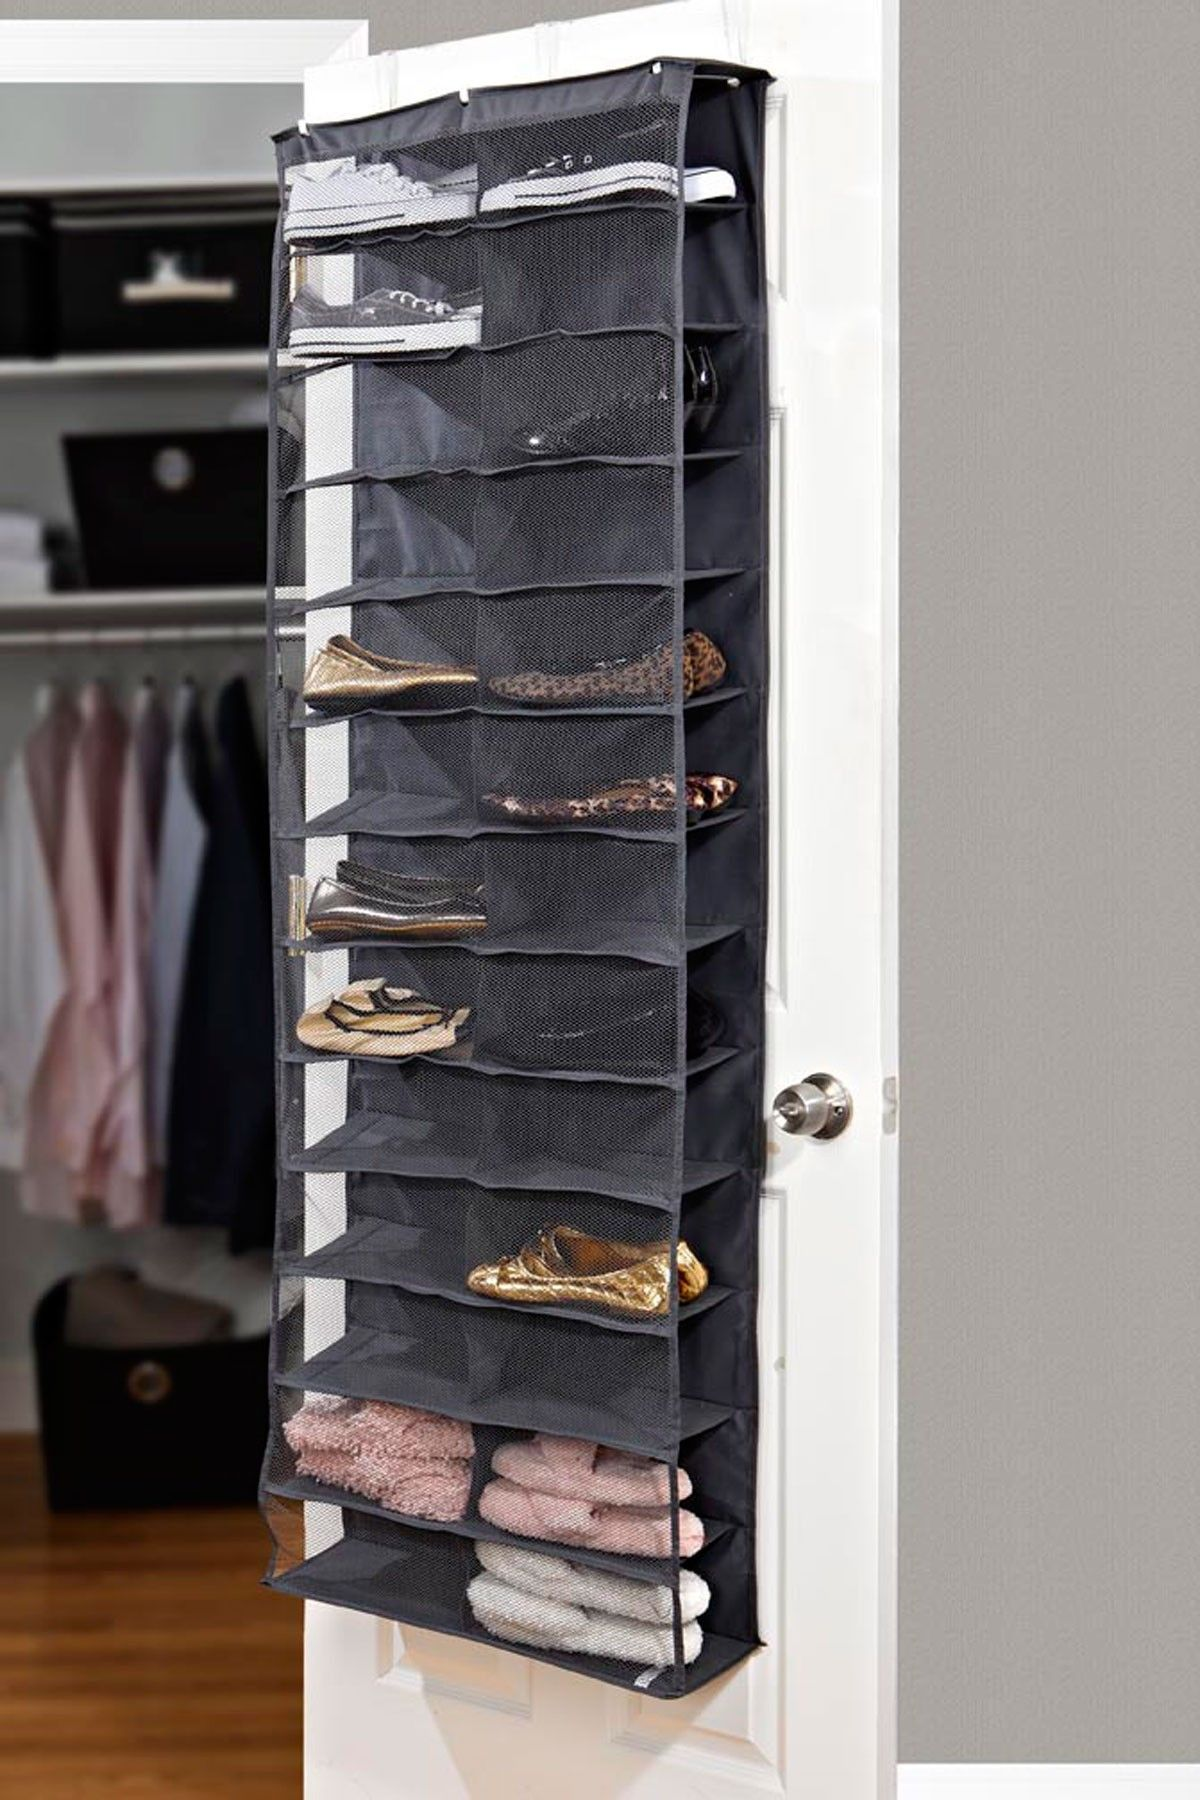 26 Pocket Over The Door Shoe Organizer Grey Organize Me